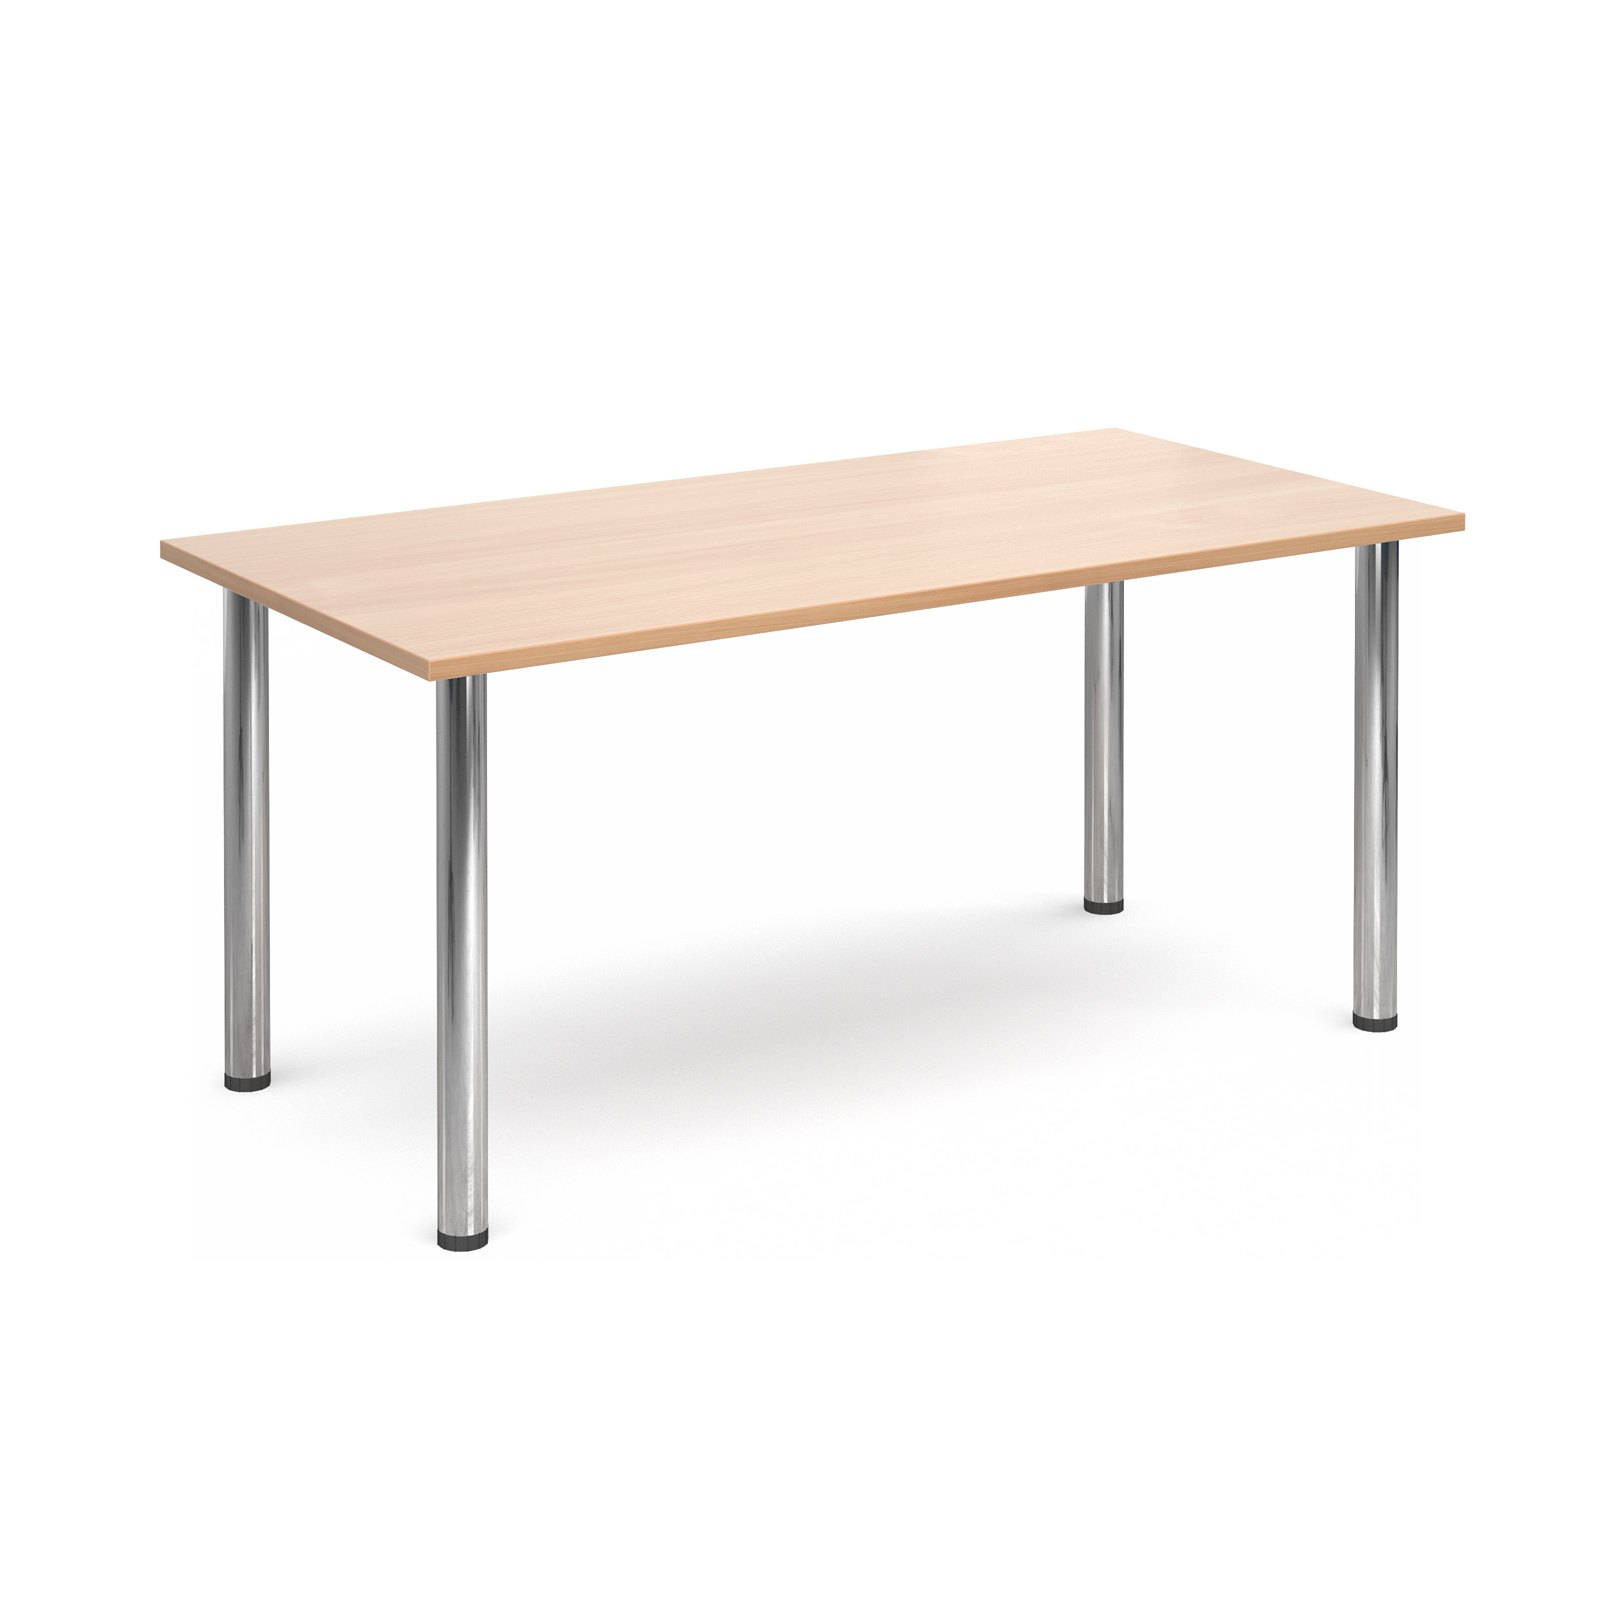 Image for Rectnglr Deluxe Chrome Radial Leg Table